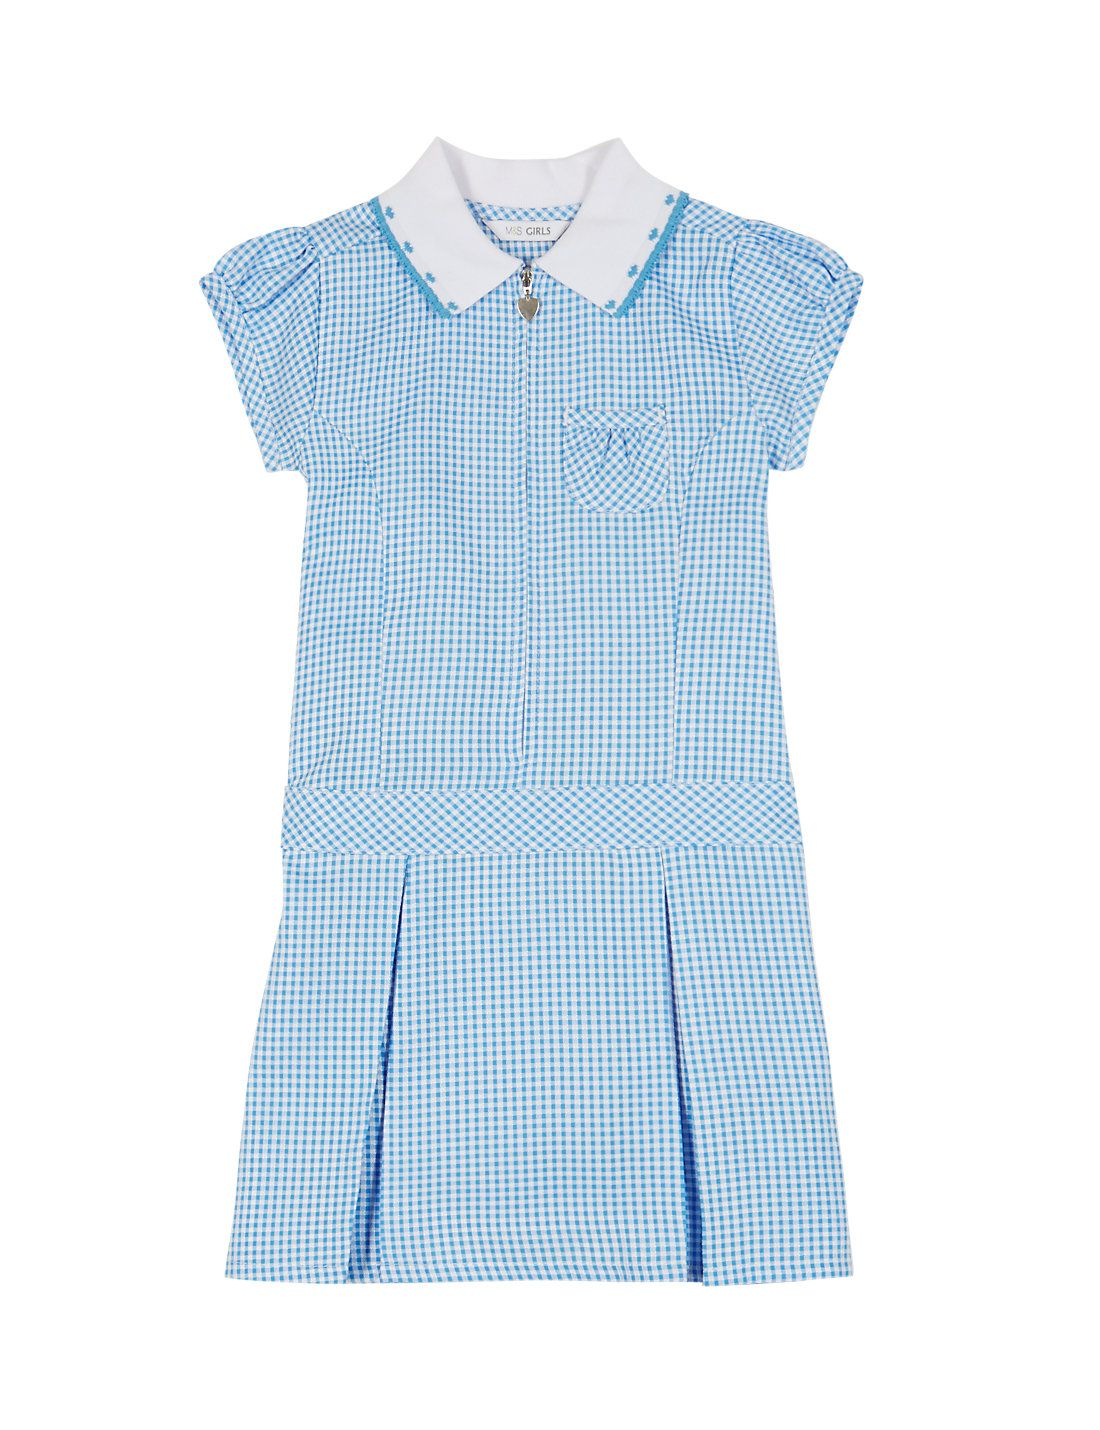 Blue gingham school summer dress